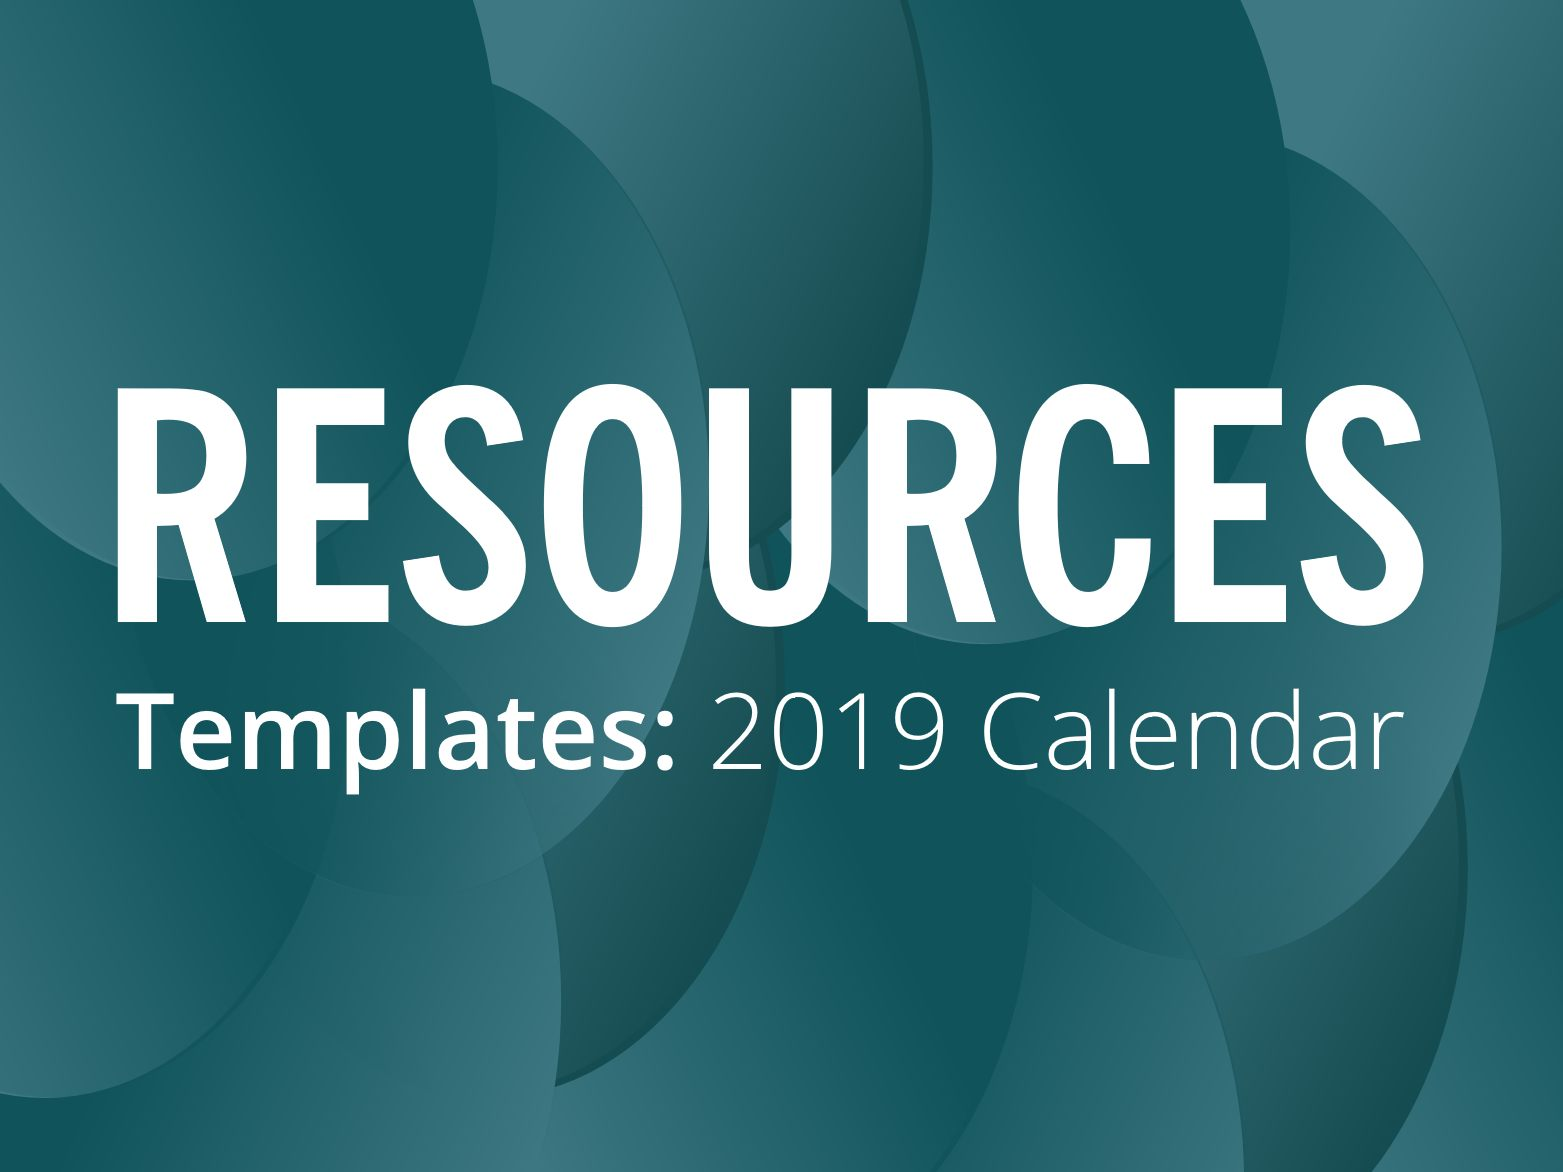 RESOURCES: Your 2019 calendar template